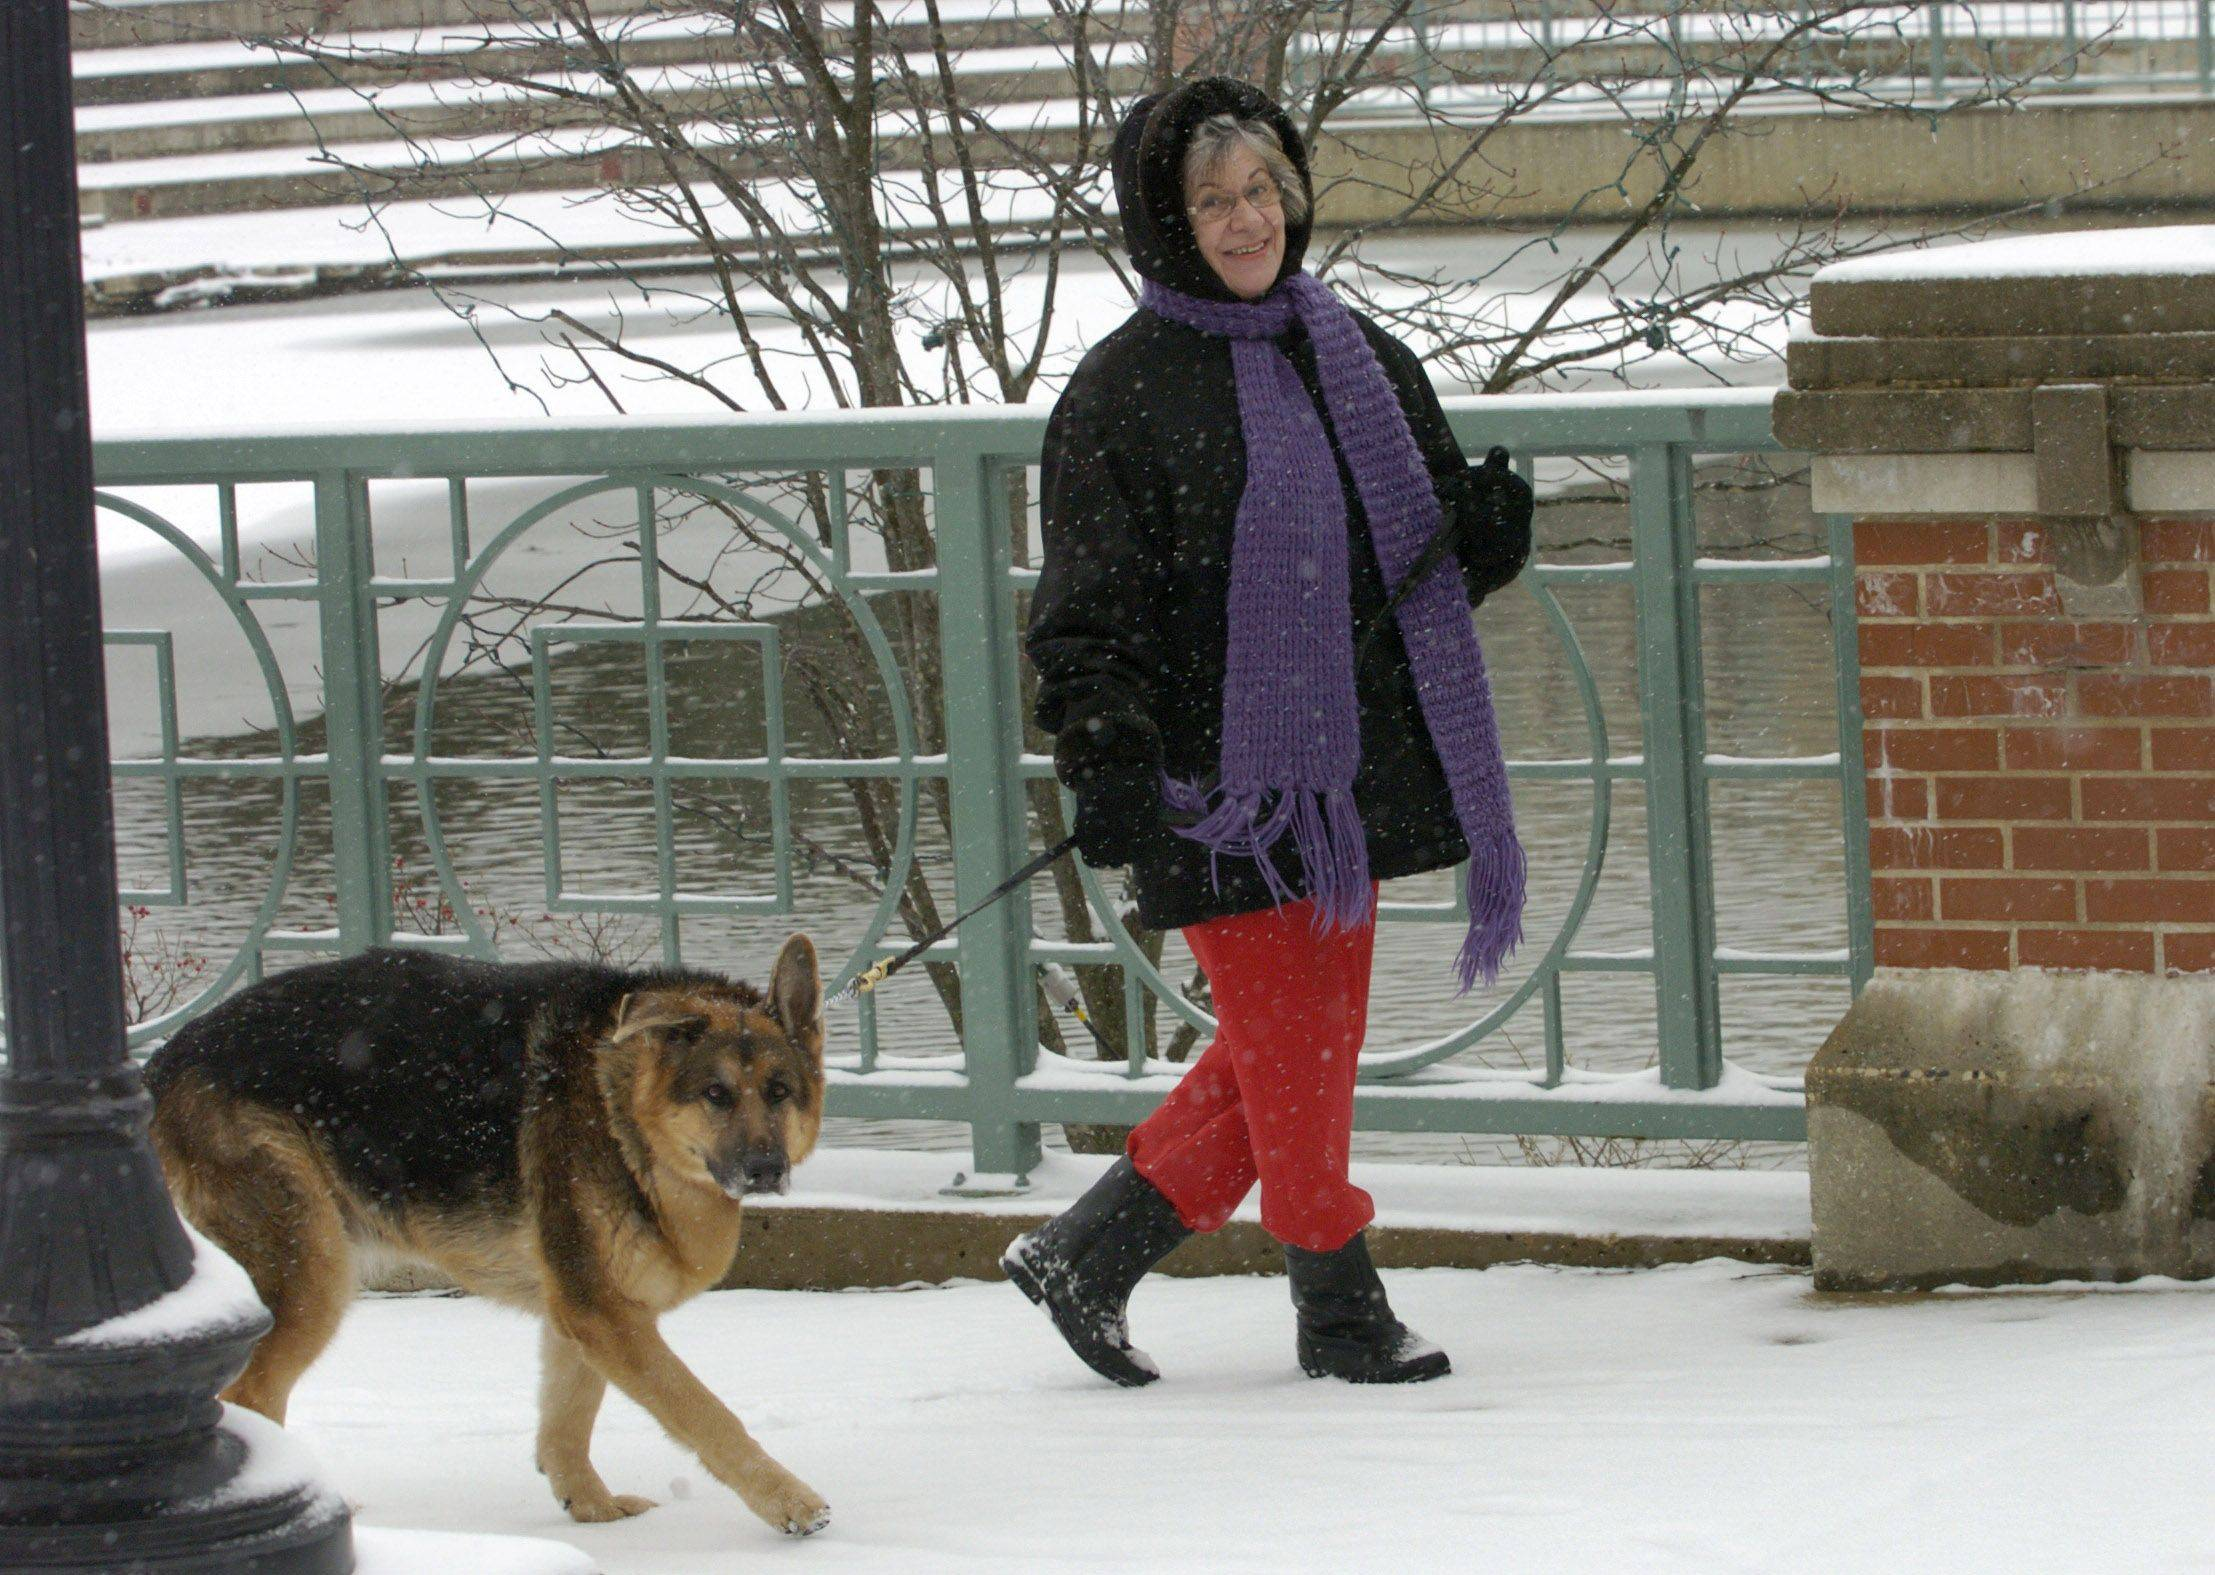 The weather didn't stop Maureen Adamek of Schaumburg from her daily walk with her German Shepard Gracie through Town Square in Schaumburg.